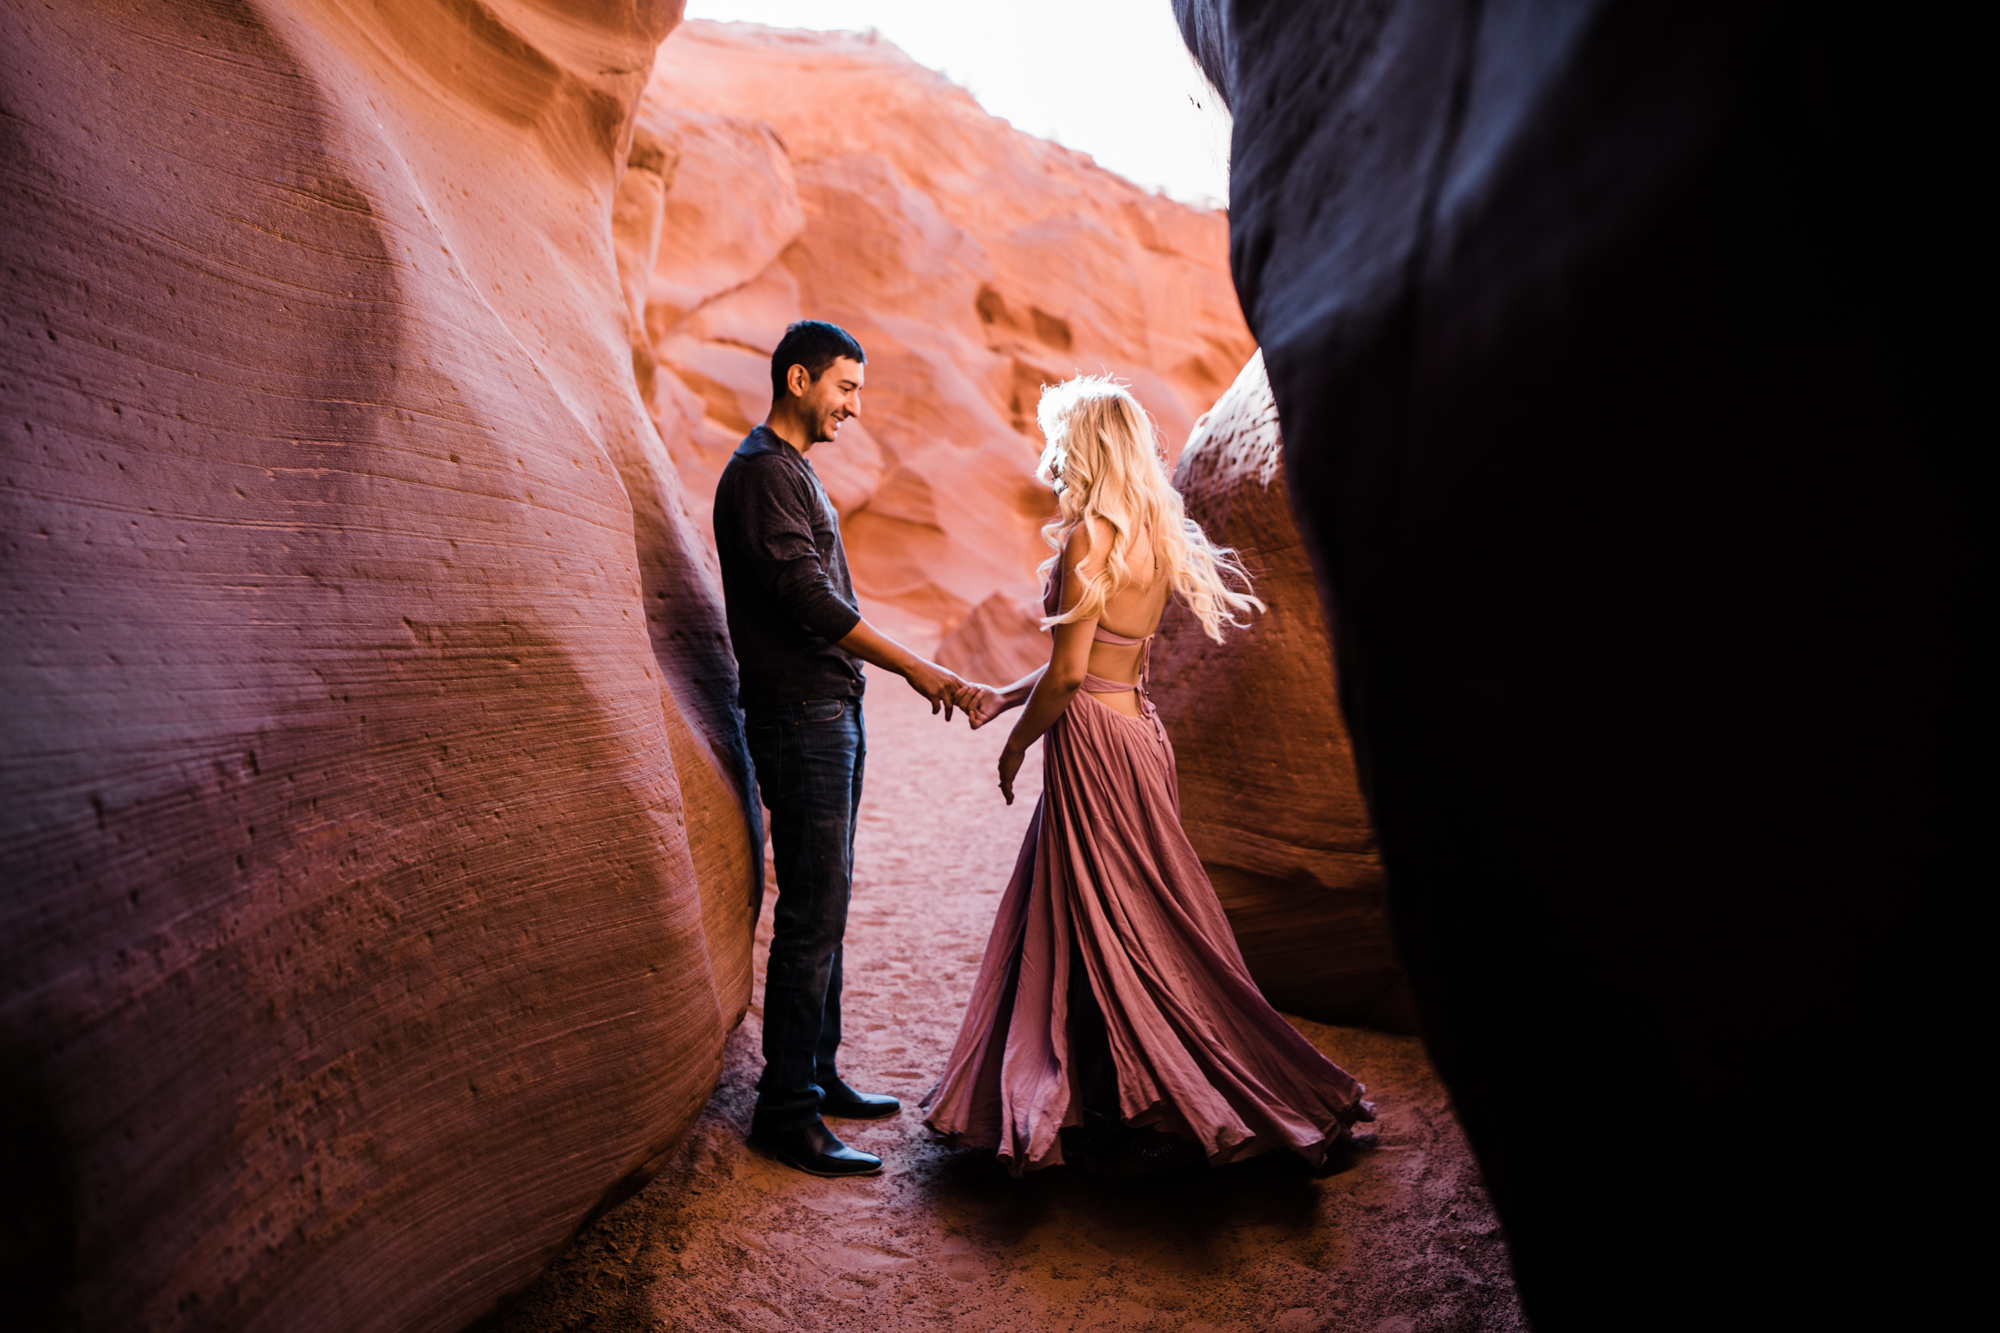 adventure elopement session in antelope canyon | destination engagement photo inspiration | utah adventure elopement photographers | the hearnes adventure photography | www.thehearnes.com